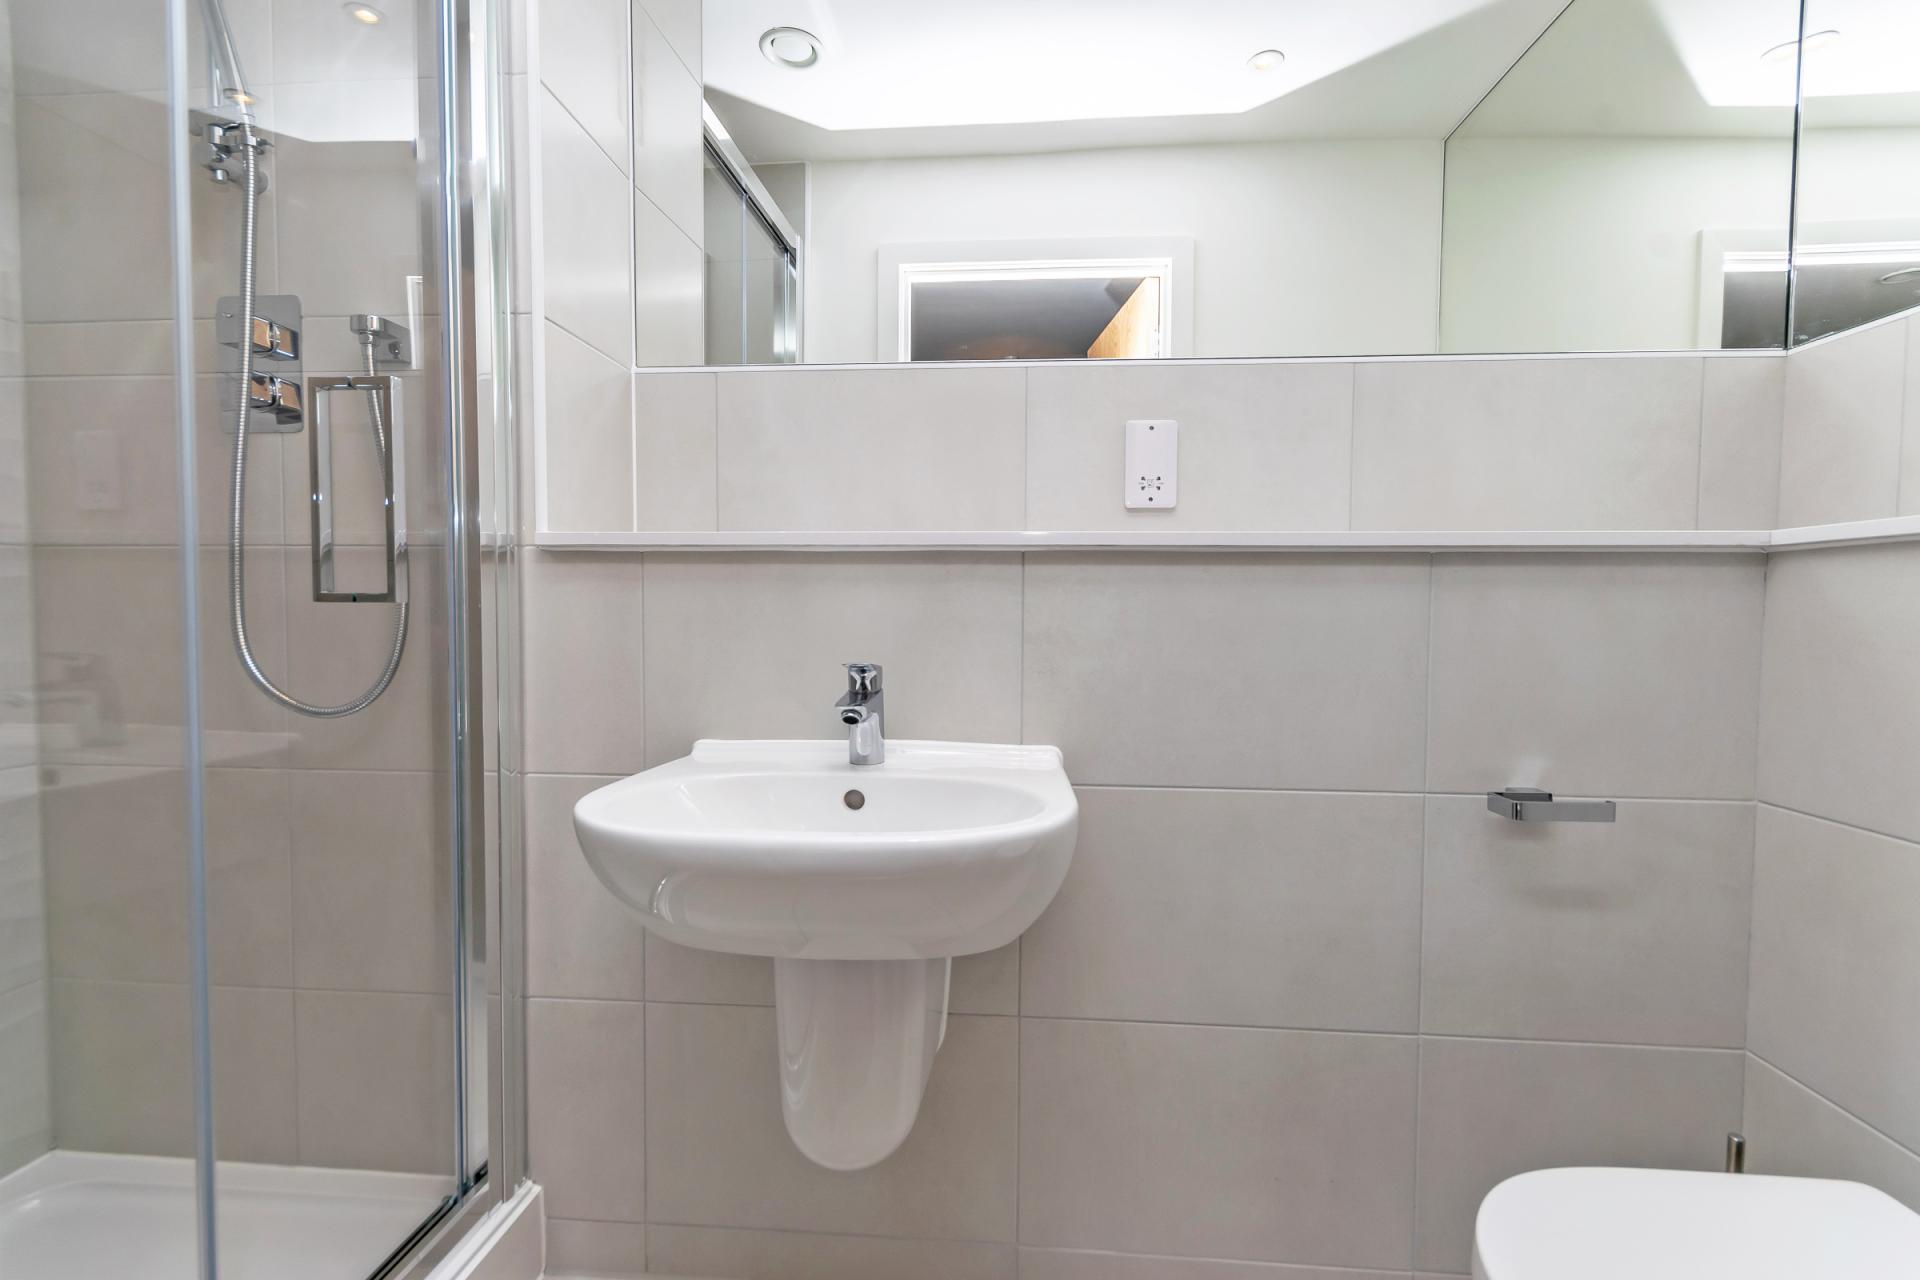 Bathroom at Halo House Serviced Apartments, Green Quarter, Manchester - Citybase Apartments